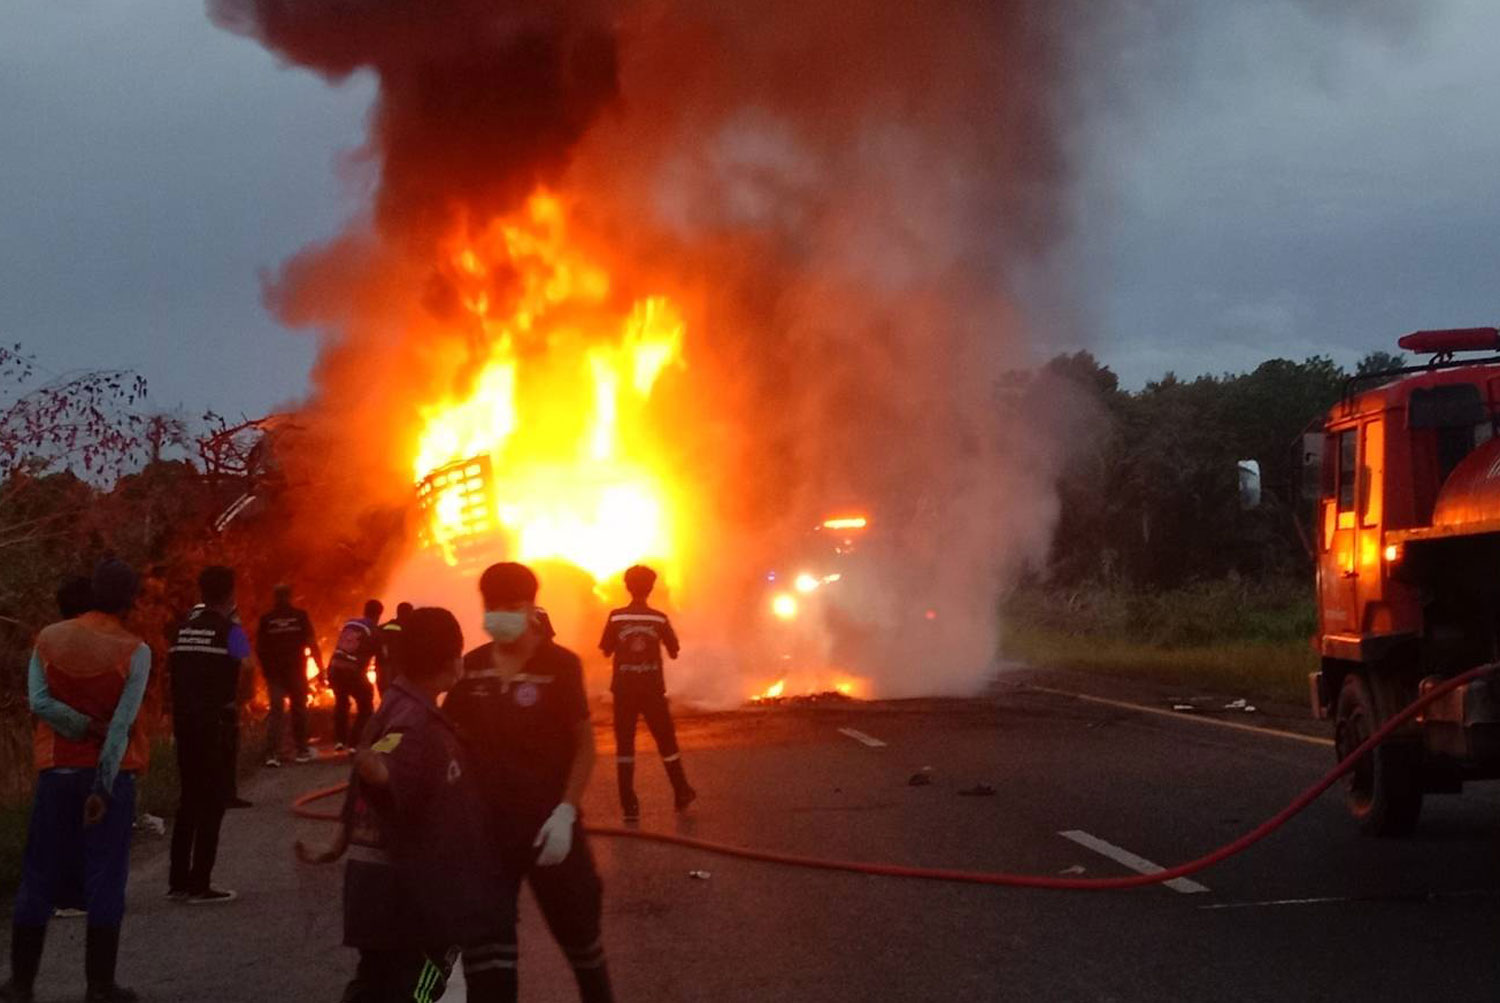 A truck carrying old car tyres bursts into flames after it hits a 10-wheel truck which rear-ends another trailer truck in Khian Sa district, Surat Thani. The crash left three people dead and one seriously injured. (Photo: Supapong Chaolan)